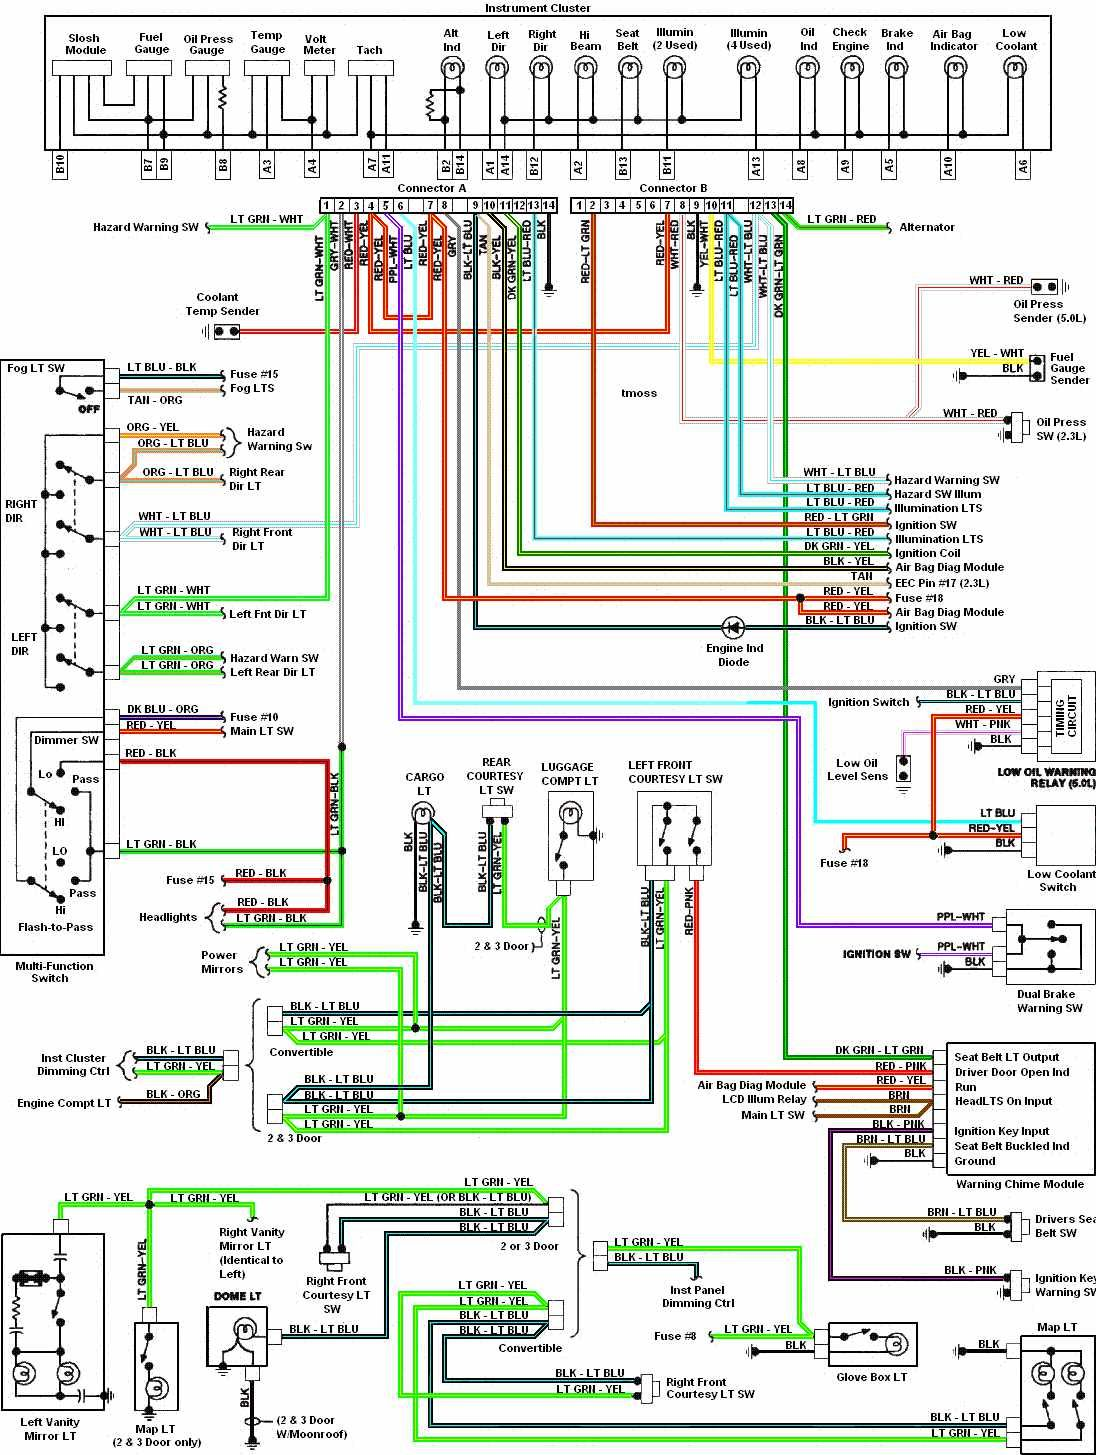 70 mustang instrument cluster wiring diagram great design of rh homewerk co  International Truck Wiring Diagram